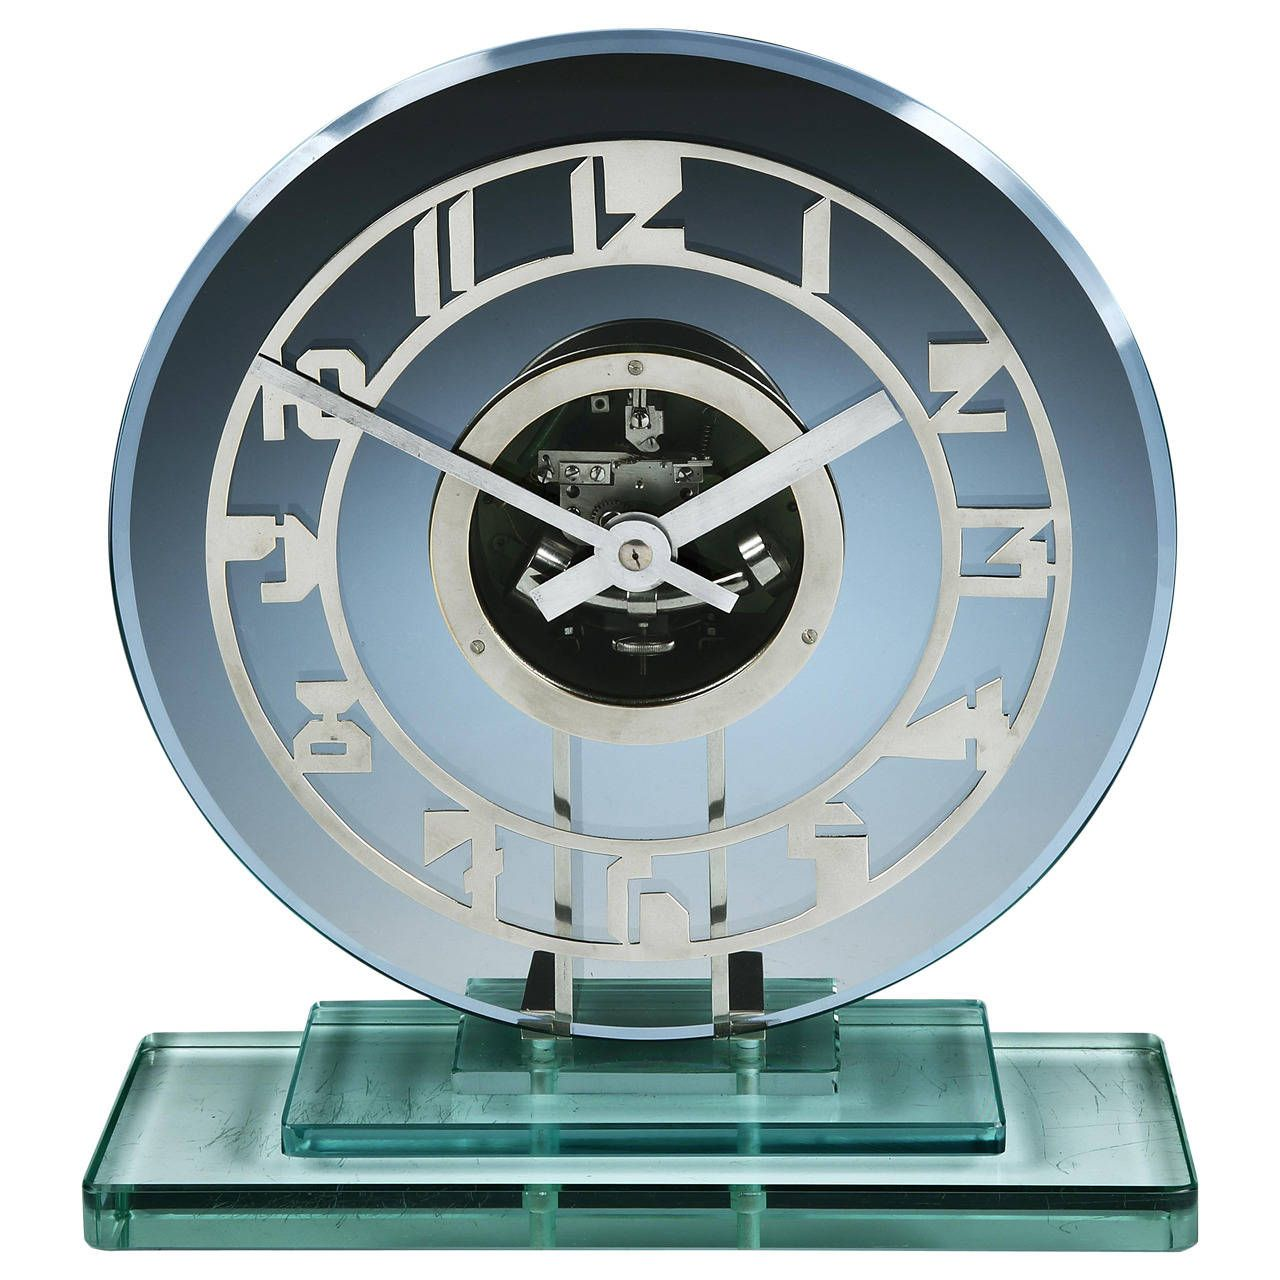 Art deco skeleton clock by ato from a unique